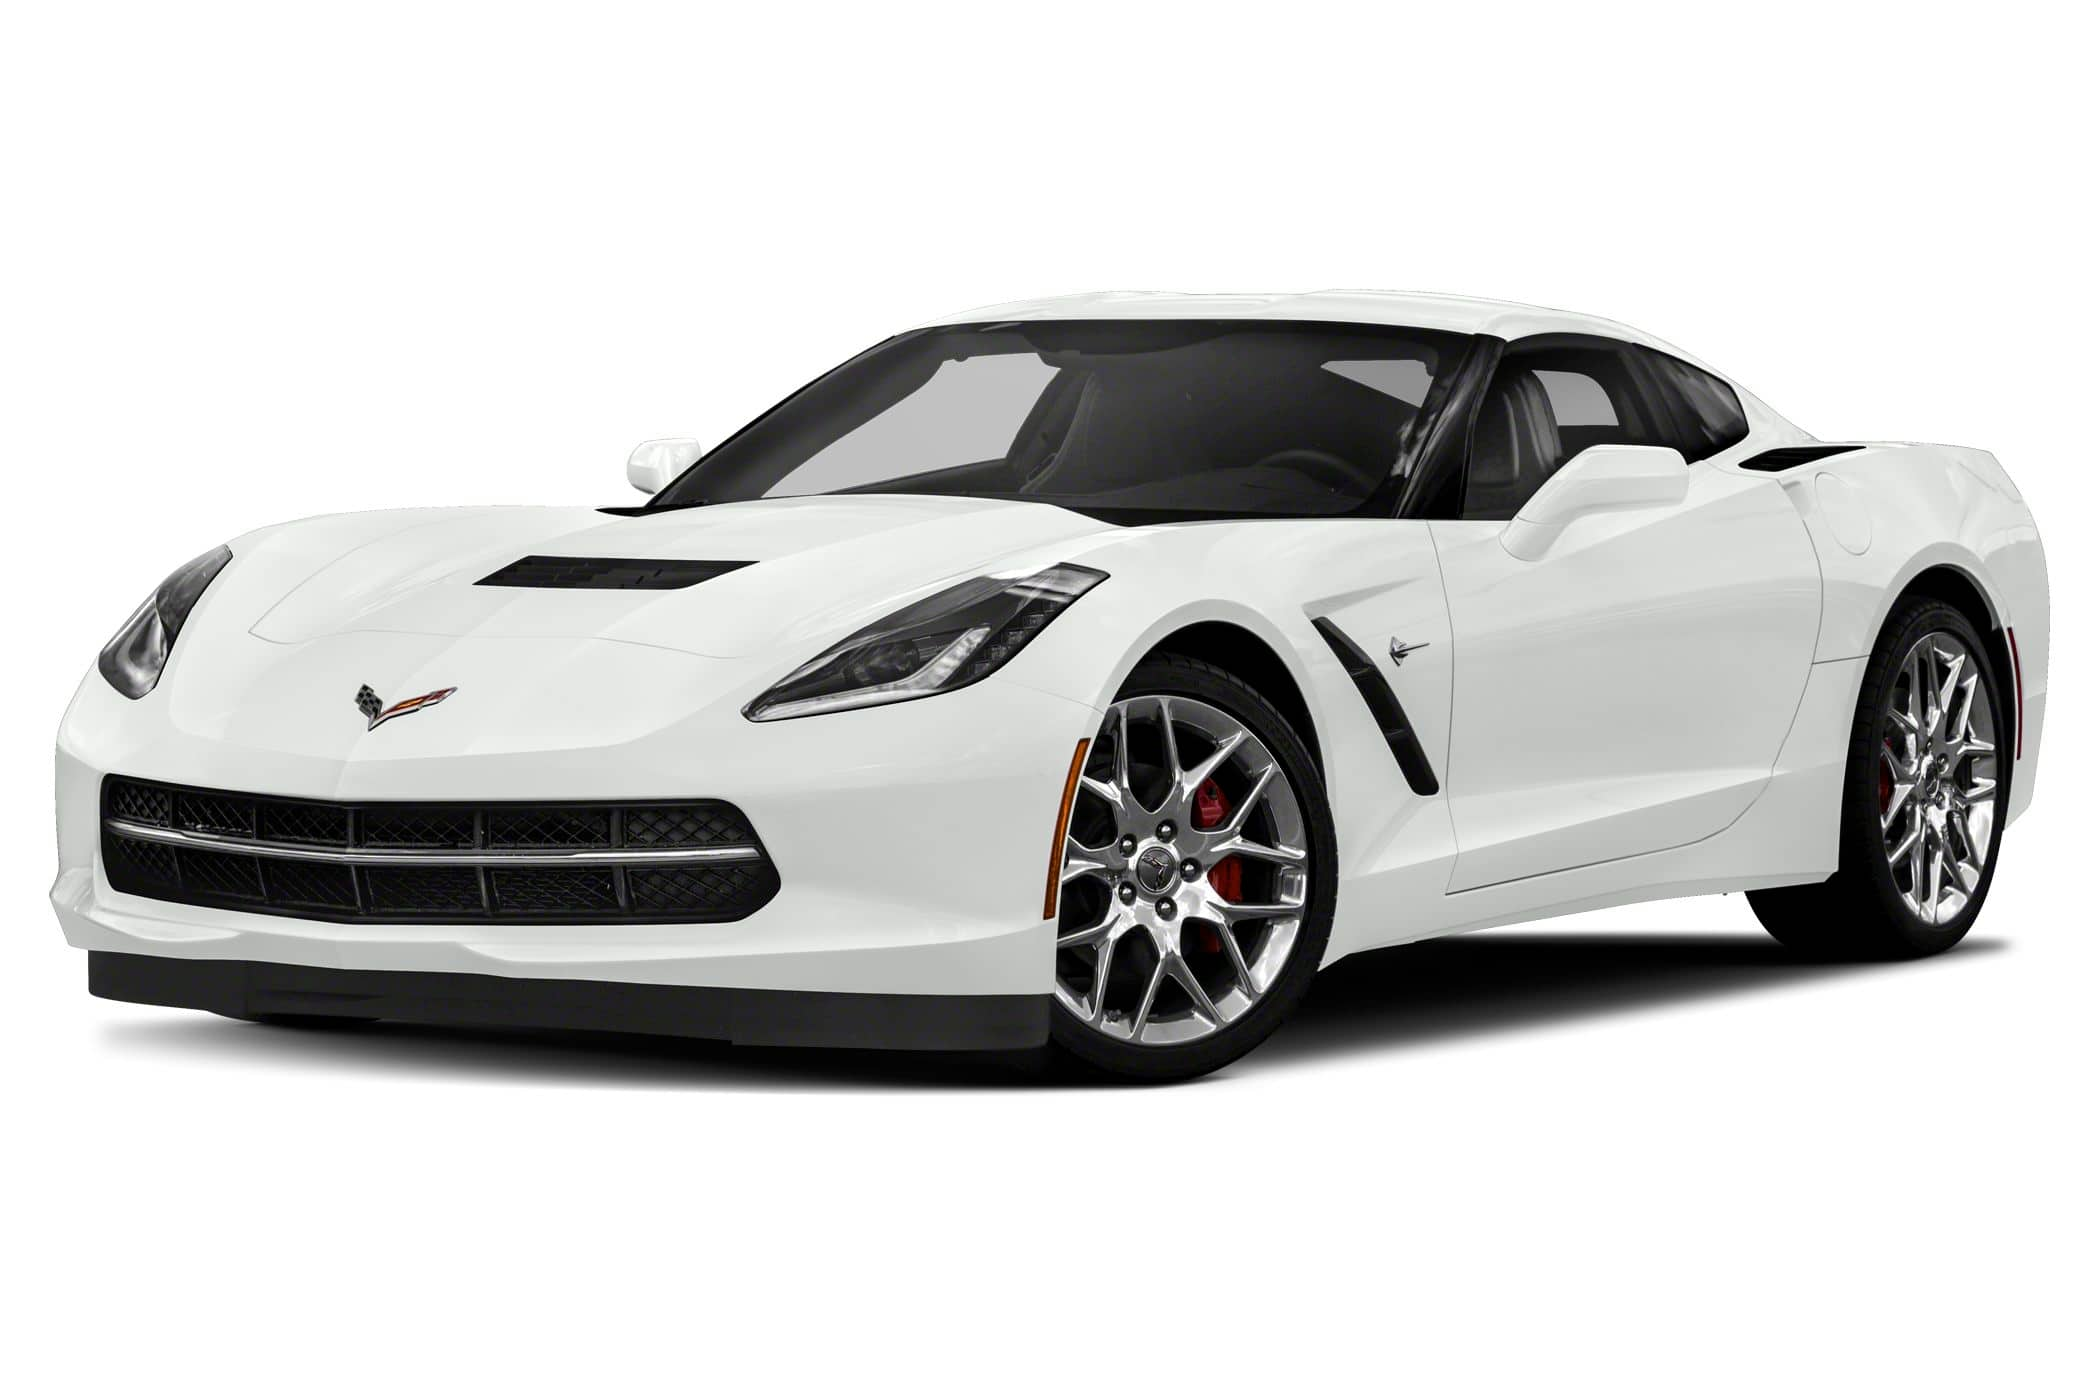 Big discounts on 2019 Corvette before C8 Launch starting at $45k